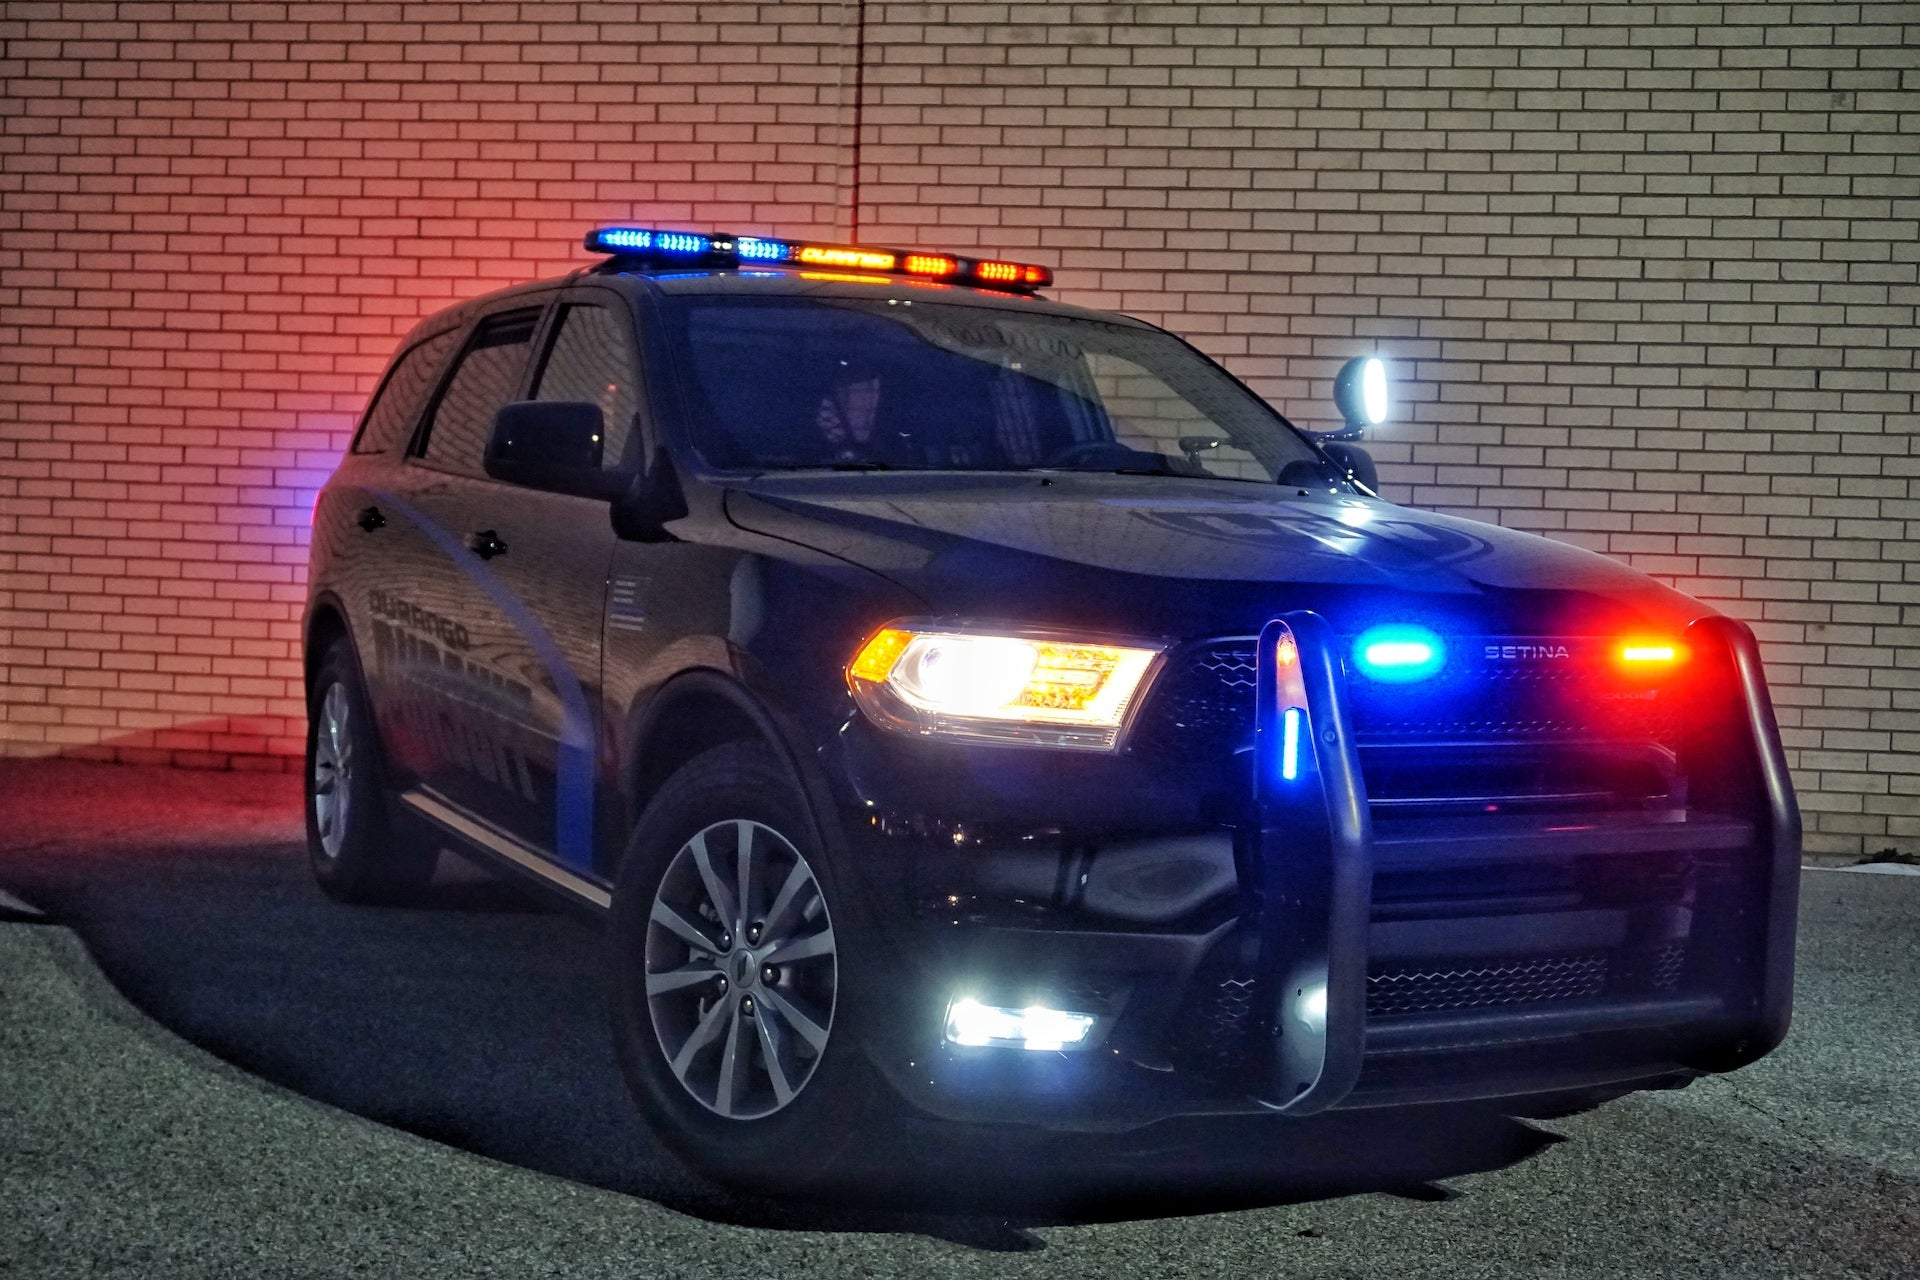 2020 Dodge Durango Pursuit Review Driving A Police Car Will Teach You A Lot About People